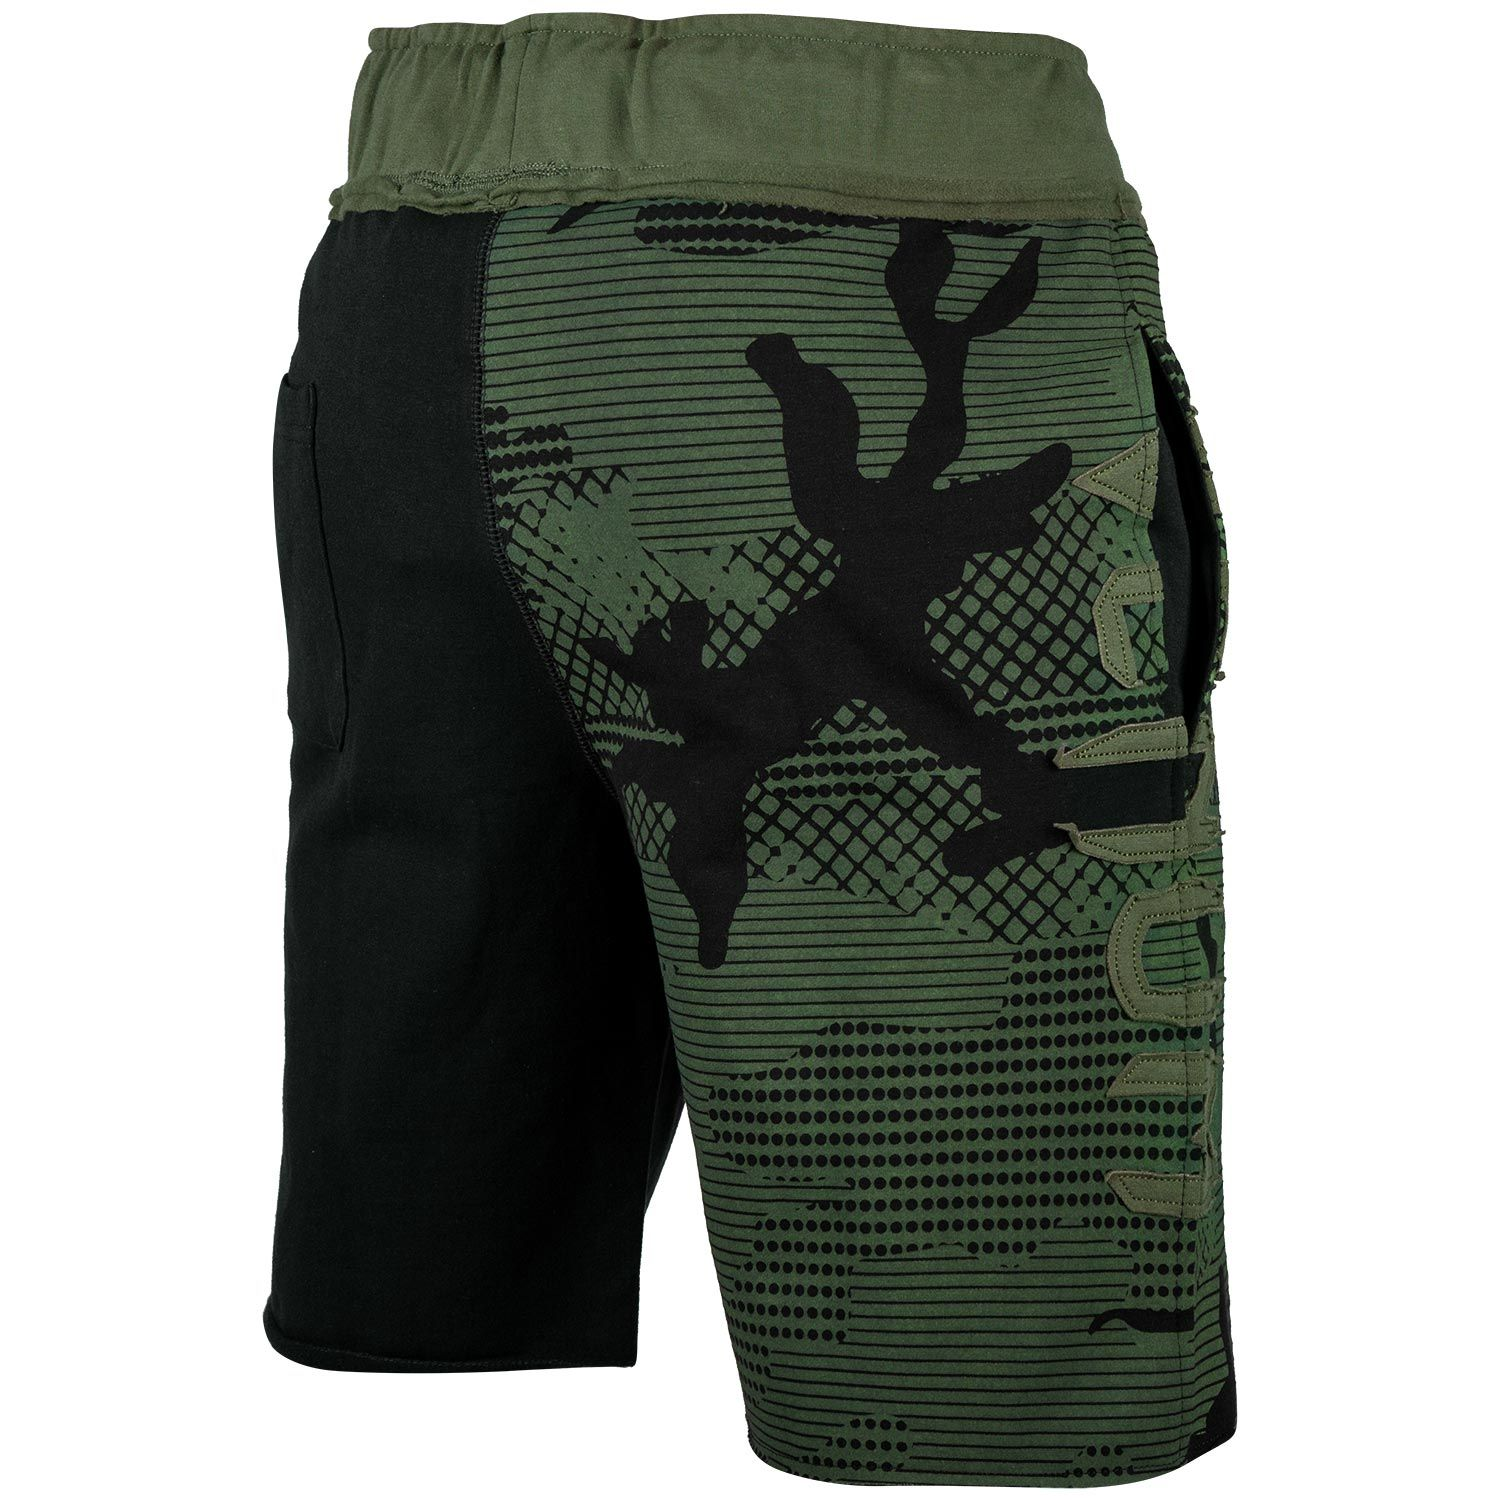 Шорты Venum Assault Cotton Shorts Khaki/Black фото 4